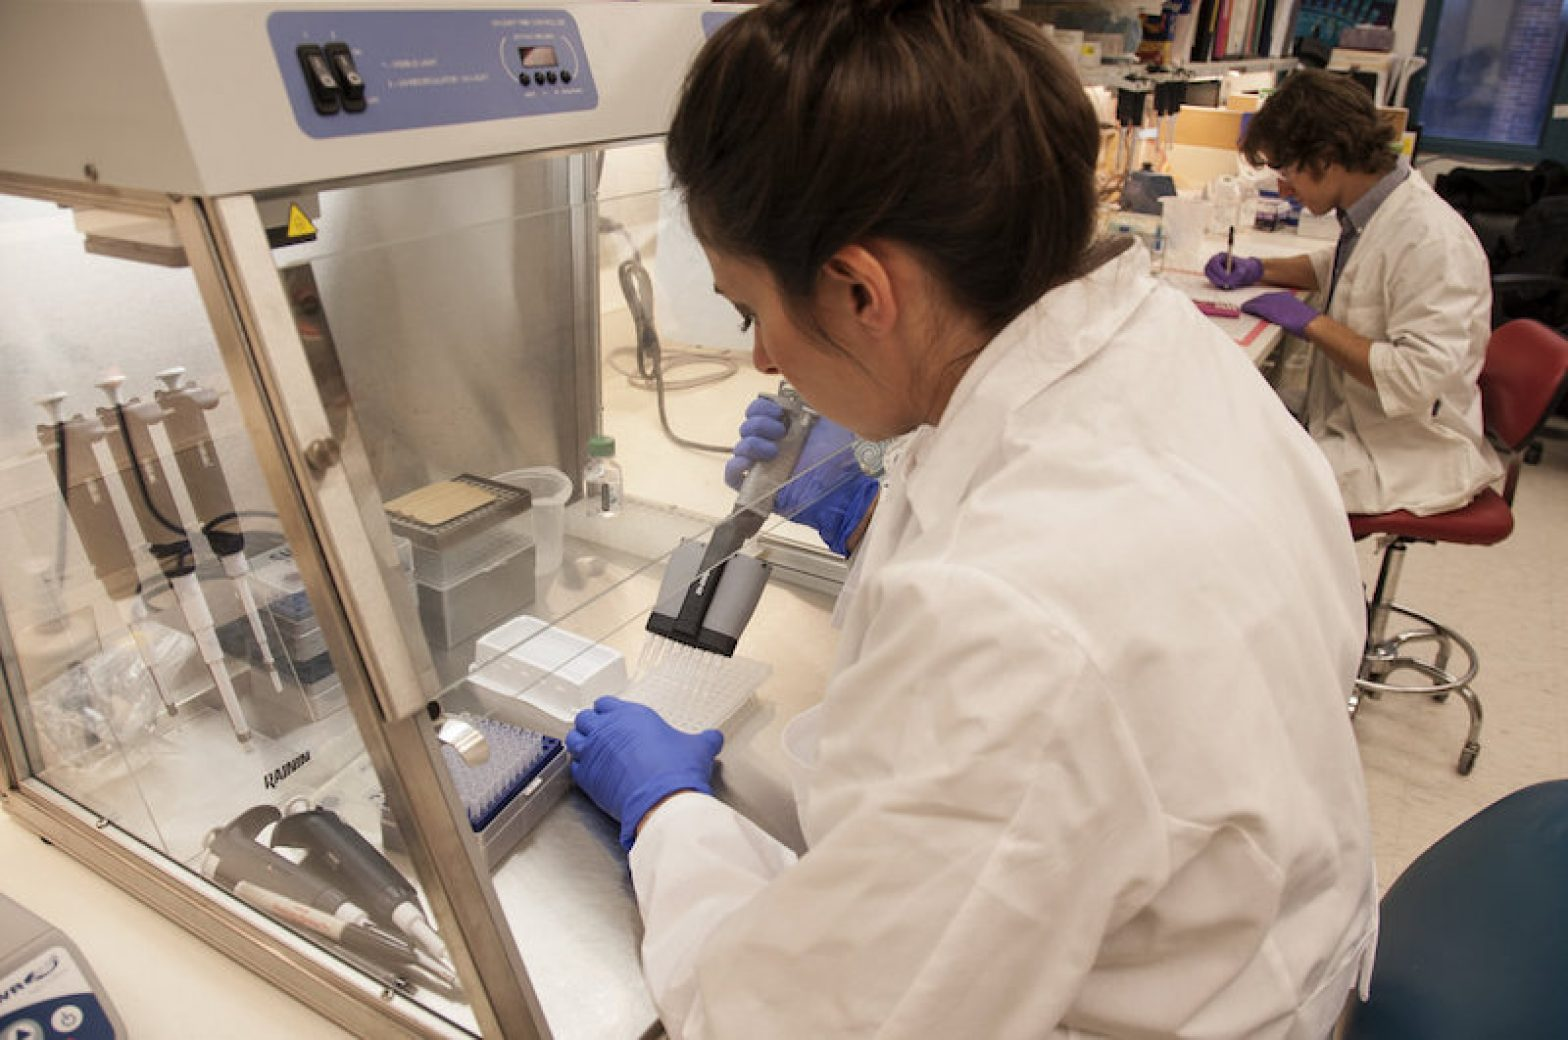 Jessica Lo Surdo, M.S. (foreground), a staff scientist at the Food and Drug Administration, studies chain reactions in stem cells in an FDA laboratory on the National Institutes of Health campus in Bethesda, Md.